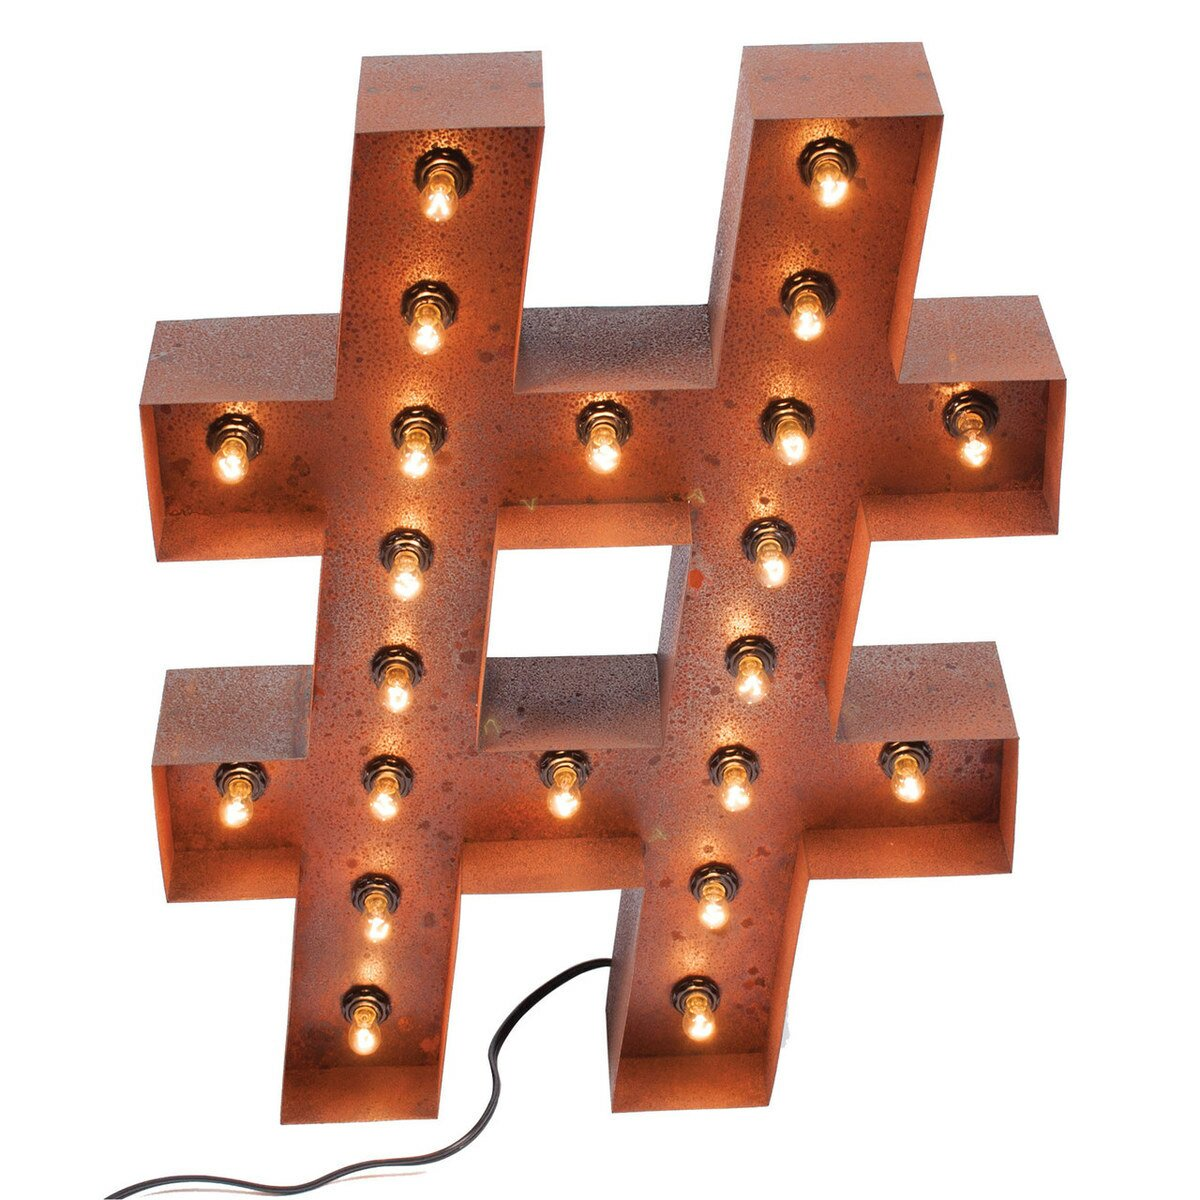 PoliVaz Hashtag Vintage Marquee Light Wall Décor